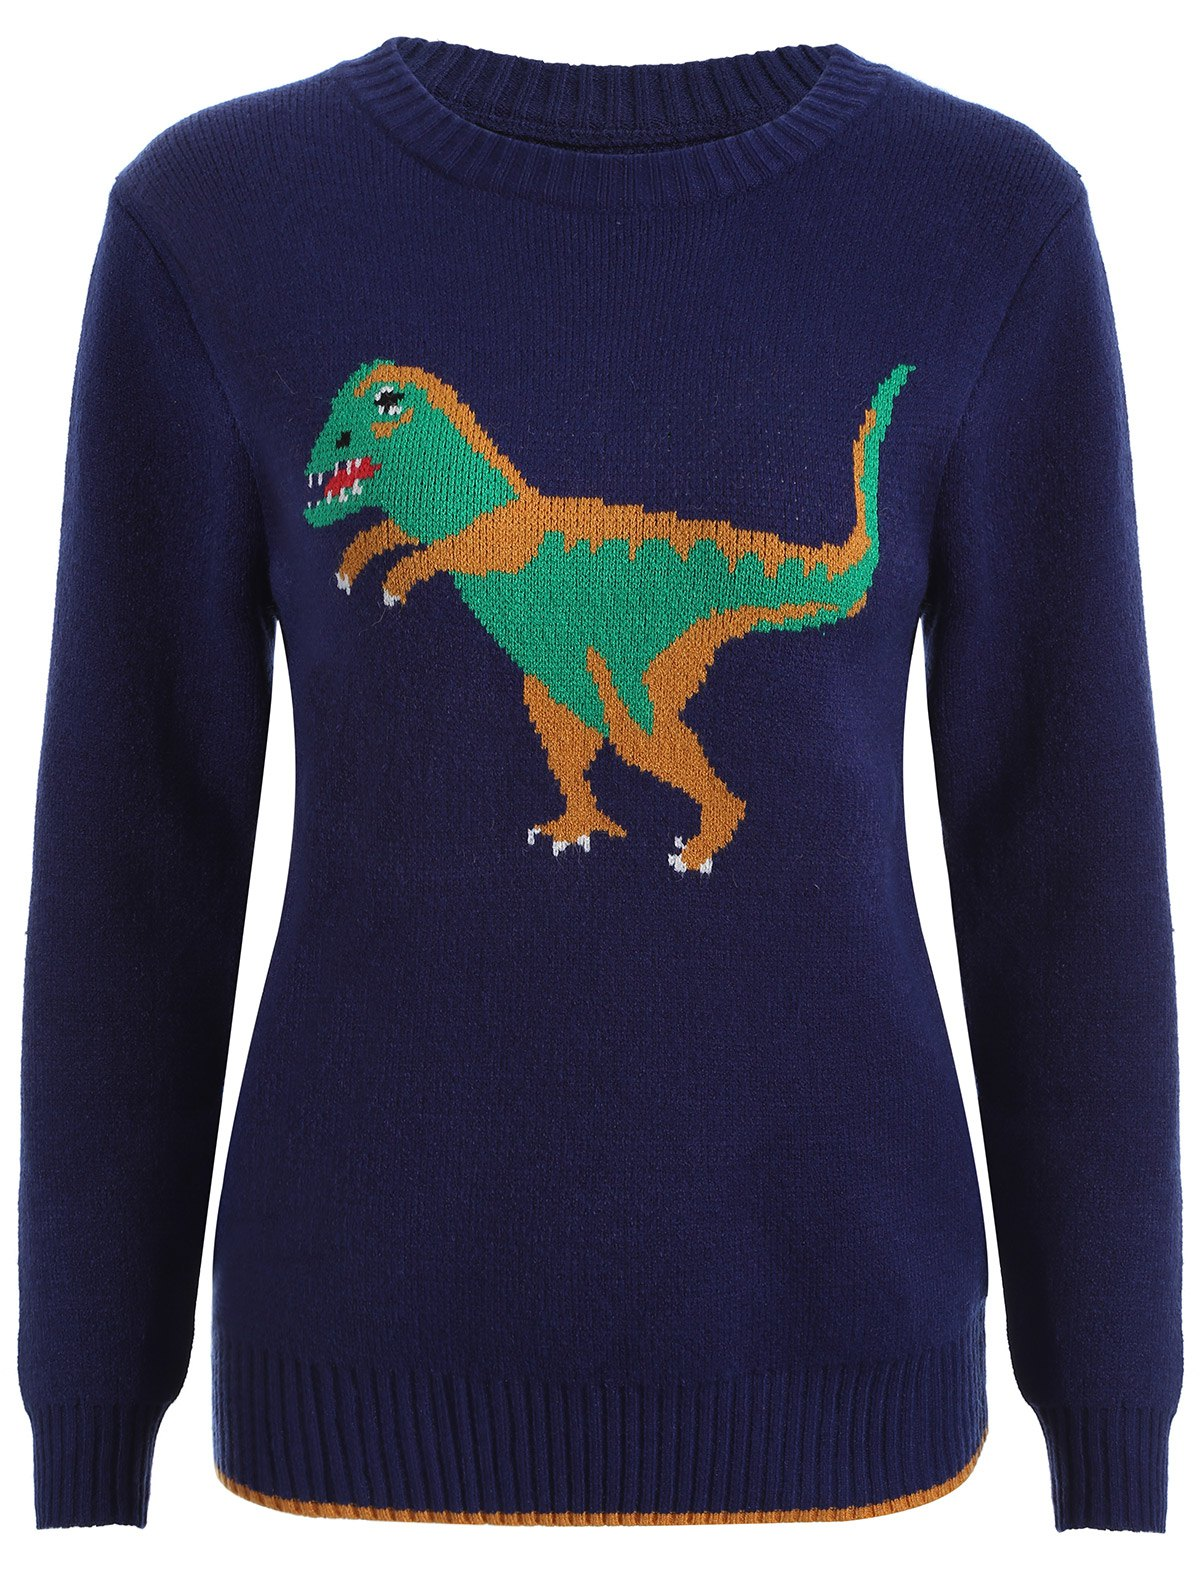 Dinosaurs Print Cartoon Knitwear